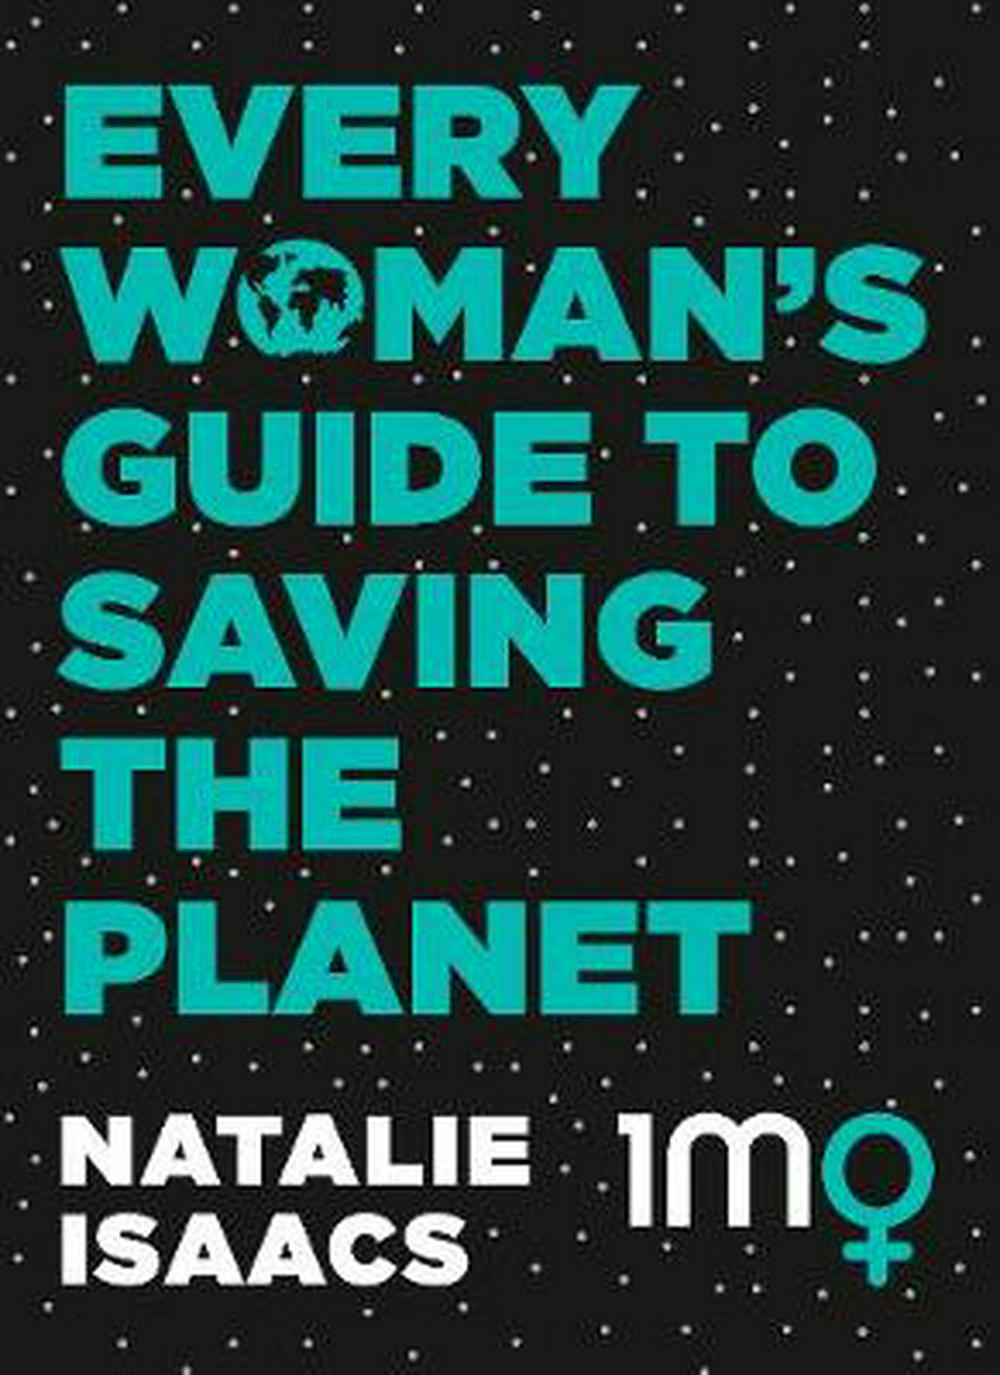 Every Woman's Guide To Saving The Planet by Natalie Isaacs, ISBN: 9780733339677